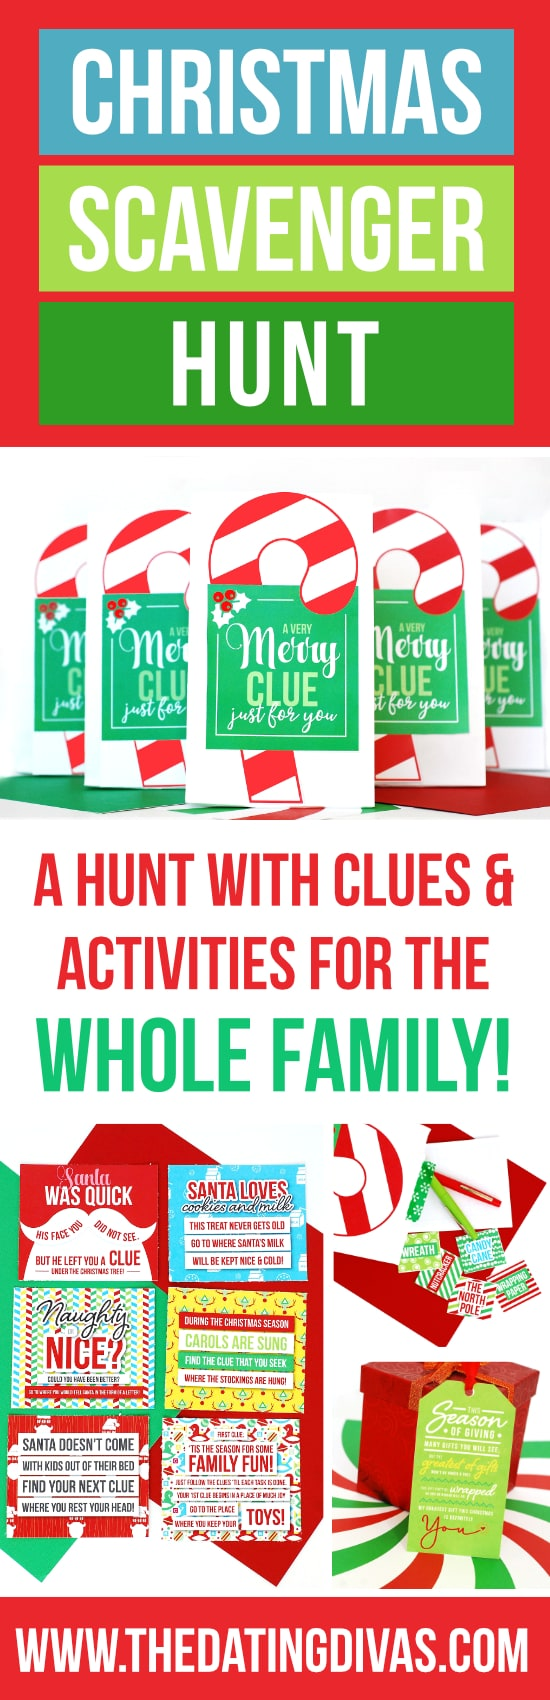 Christmas Scavenger Hunt For Adults and Kids